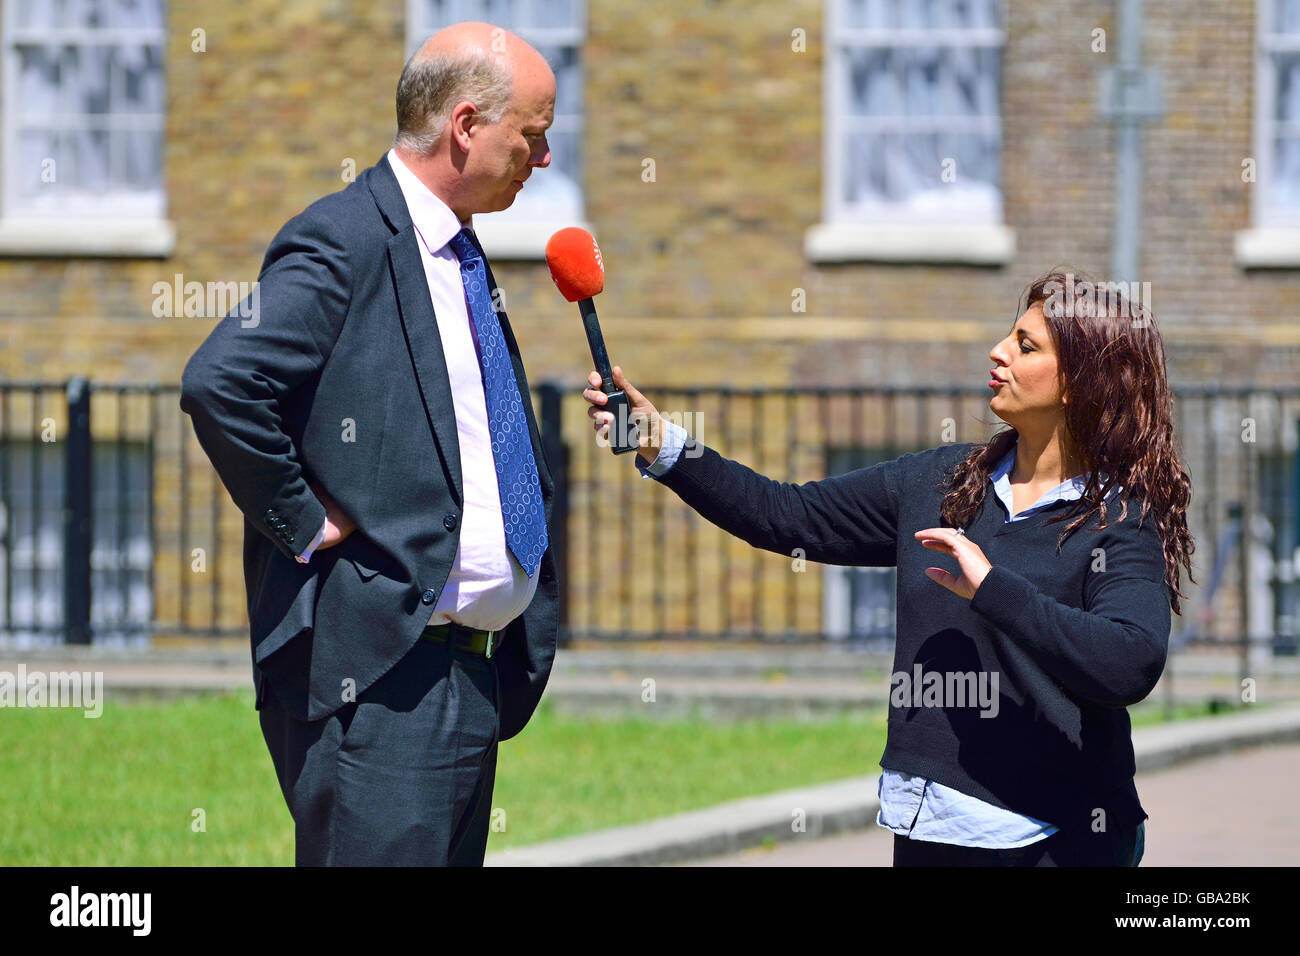 Chris Grayling MP (Conservative: Epsom and Ewell), now Transport Secretary - College Green, Westminster, 2016 - Stock Image